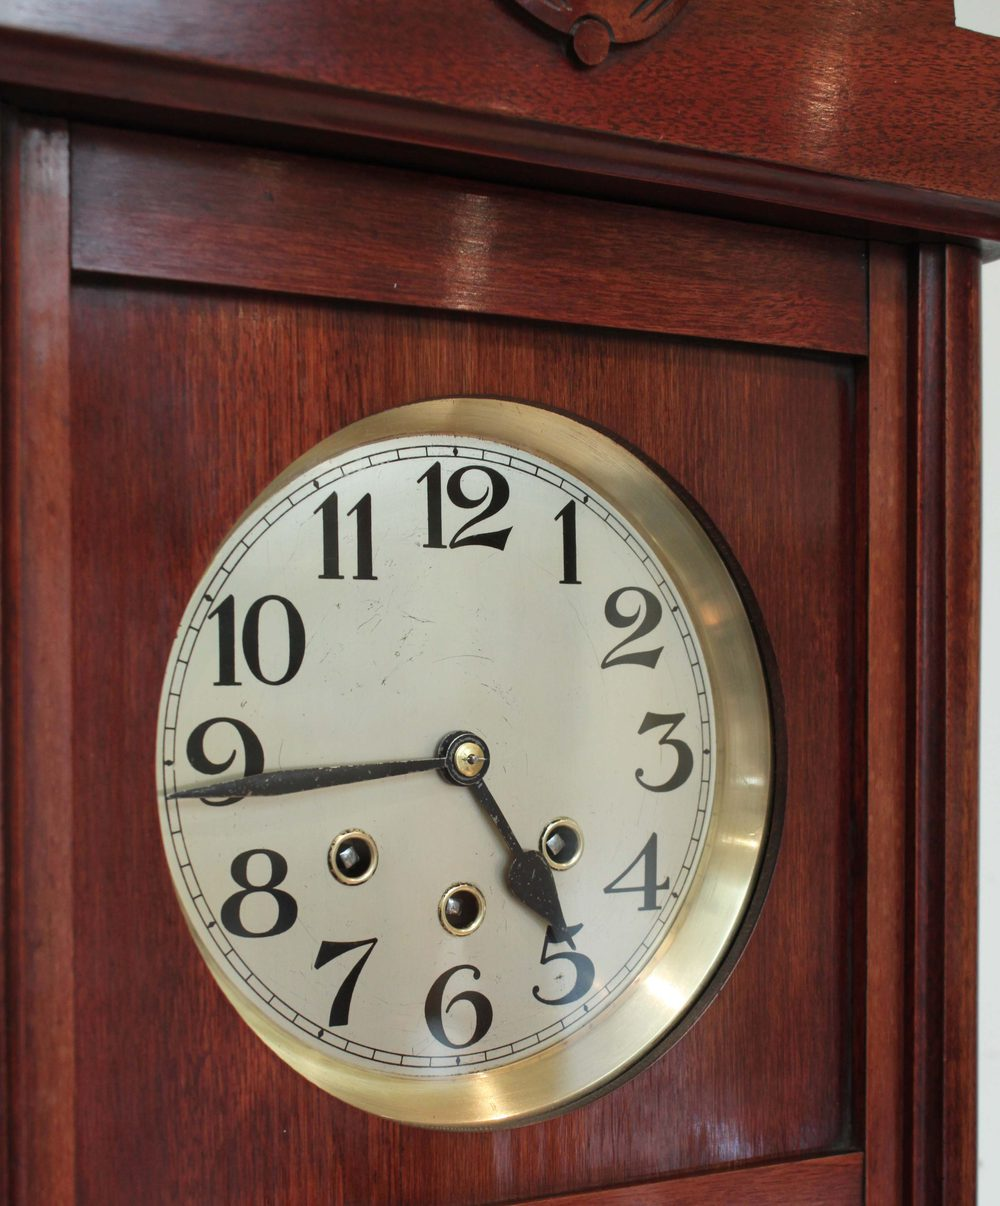 60eaf082ab9 Westminster Chime Wall Clock Antique Wall Clocks ...